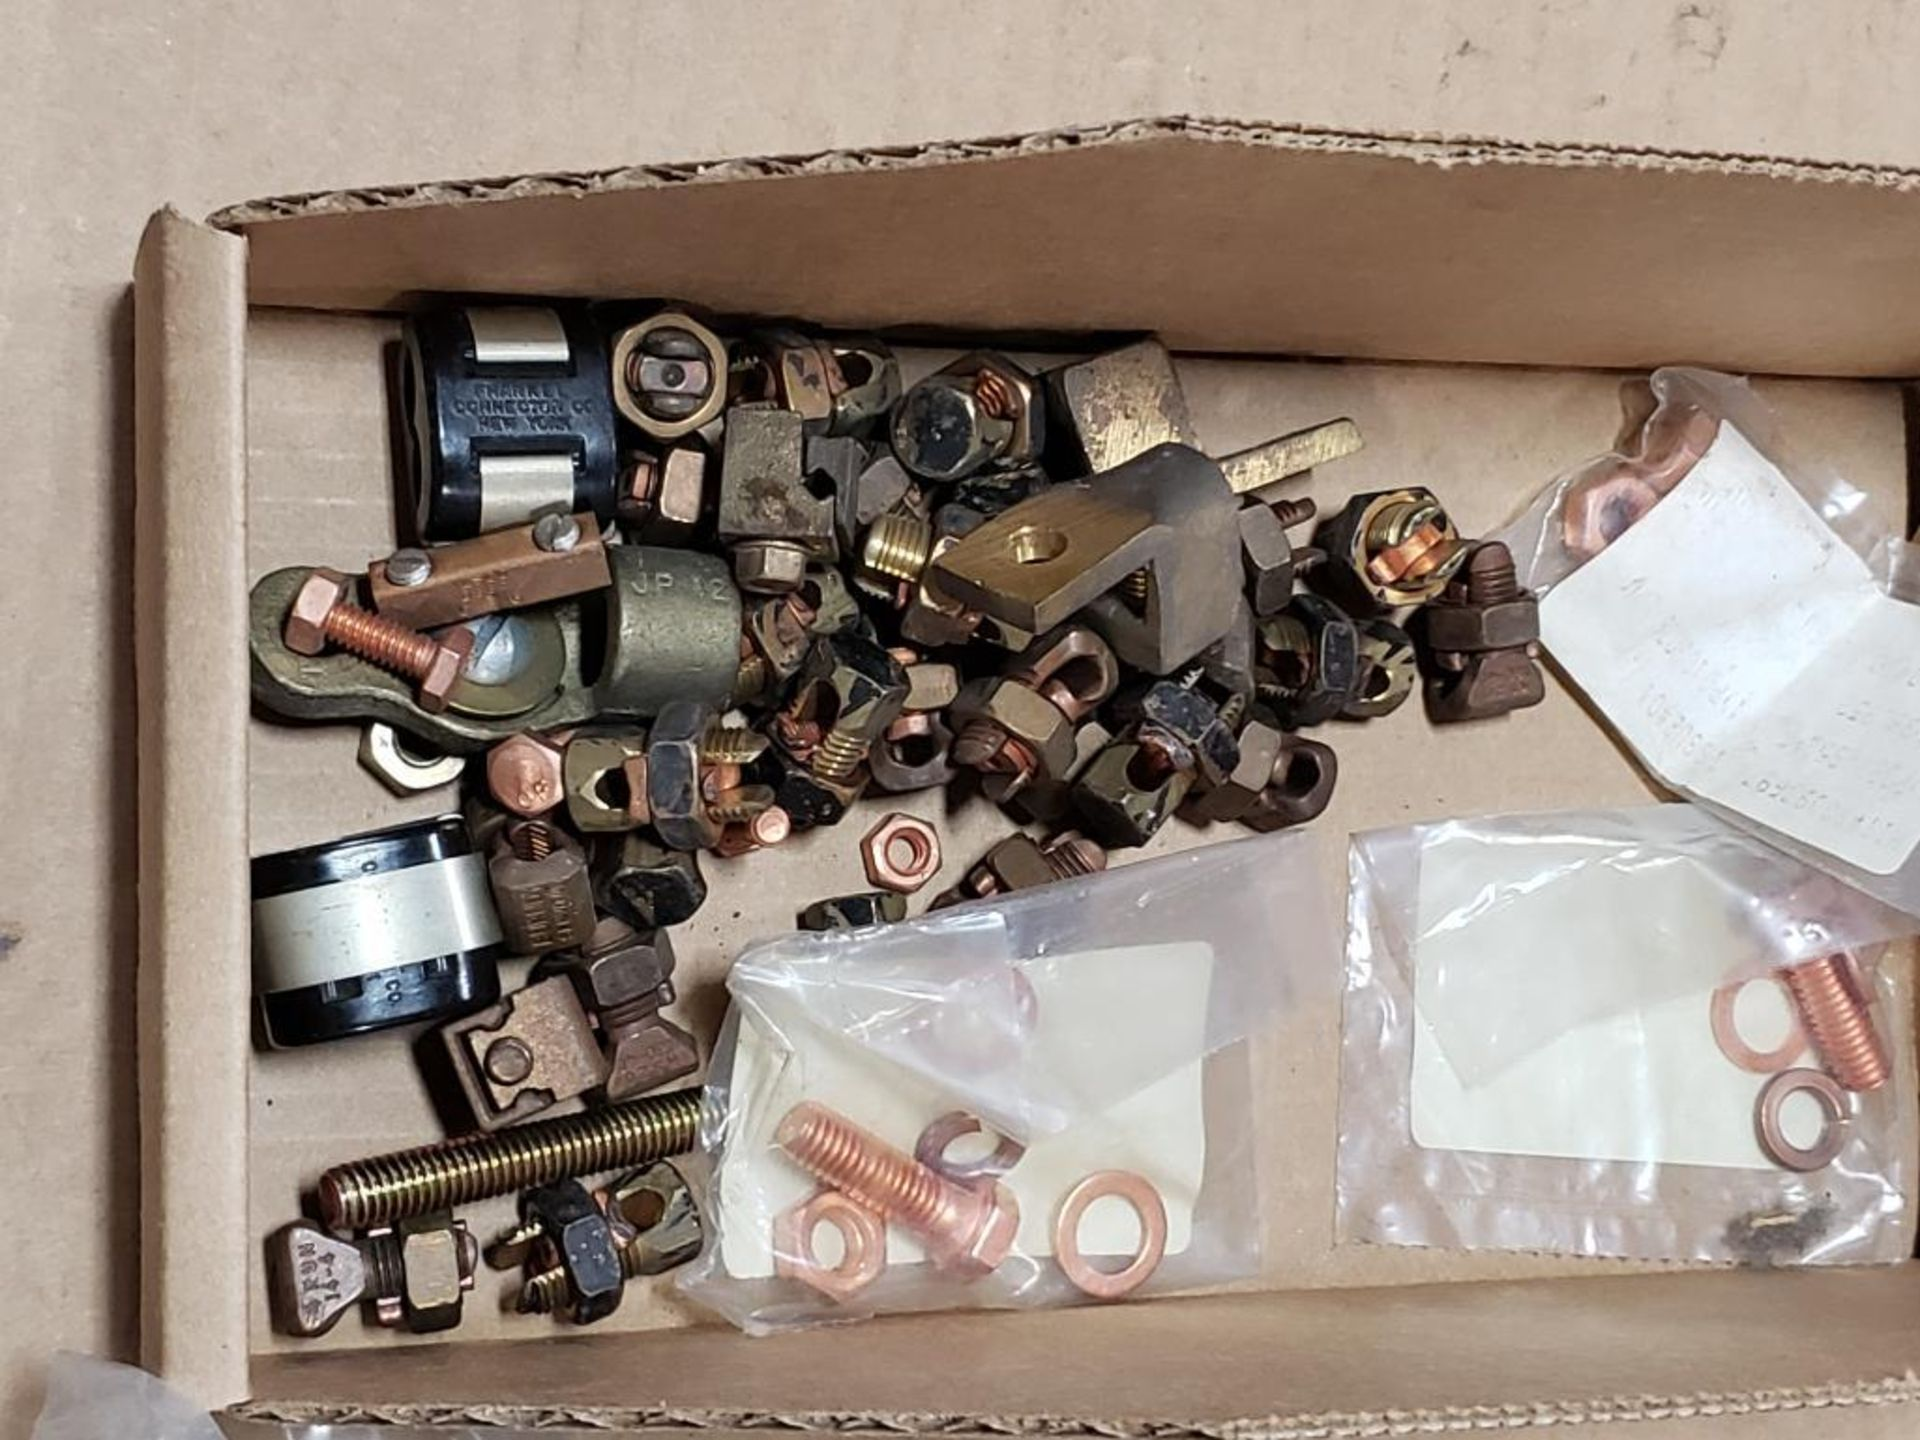 Assorted electrical wire terminals. - Image 2 of 3